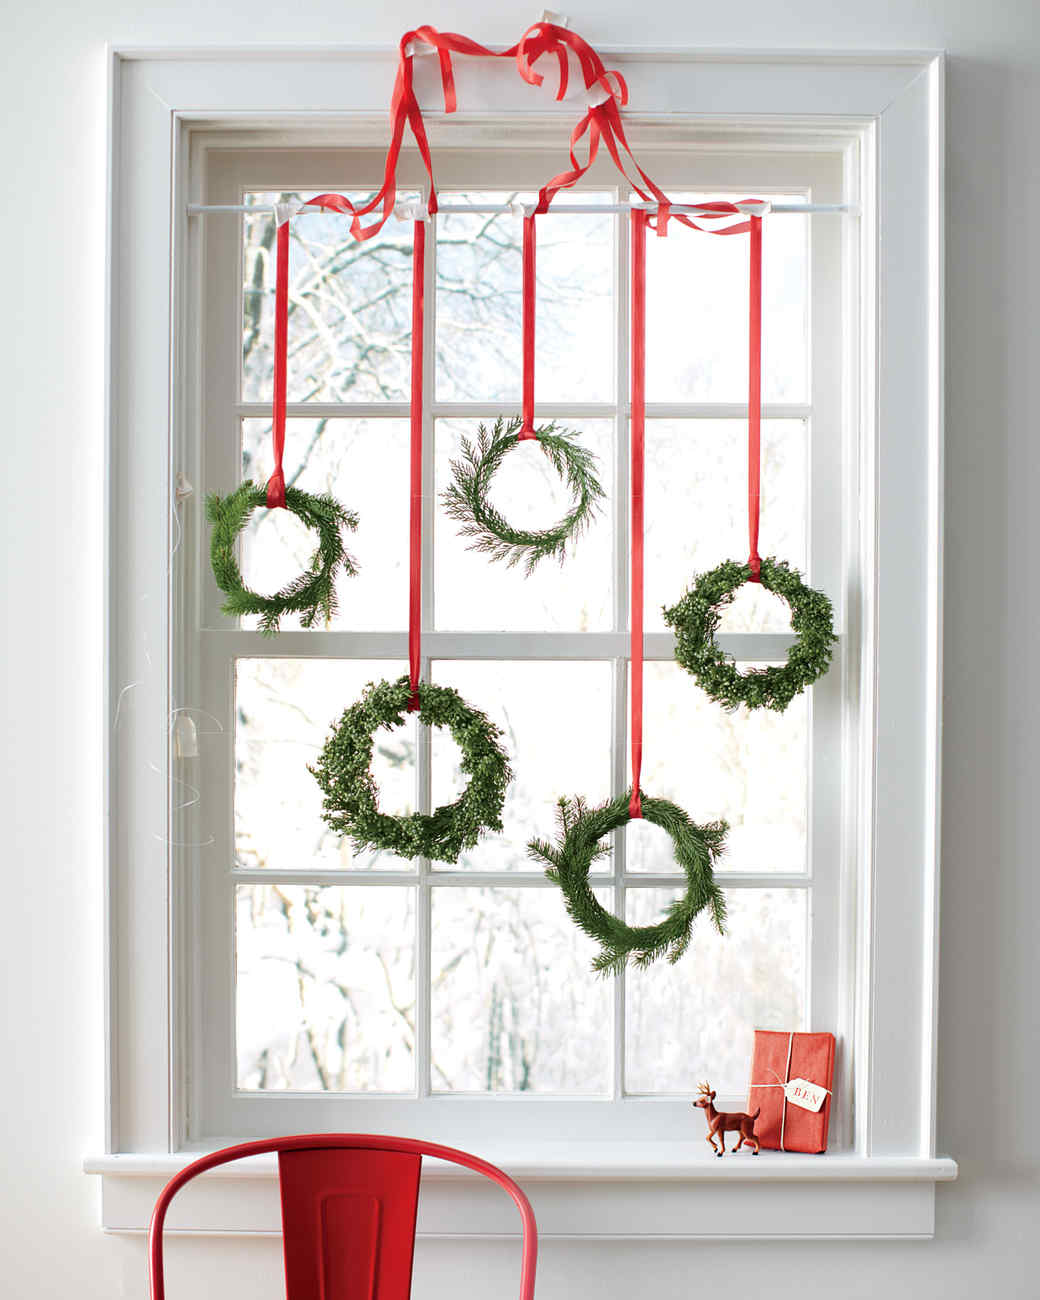 good-things-wreaths-1-mld107860。jpg